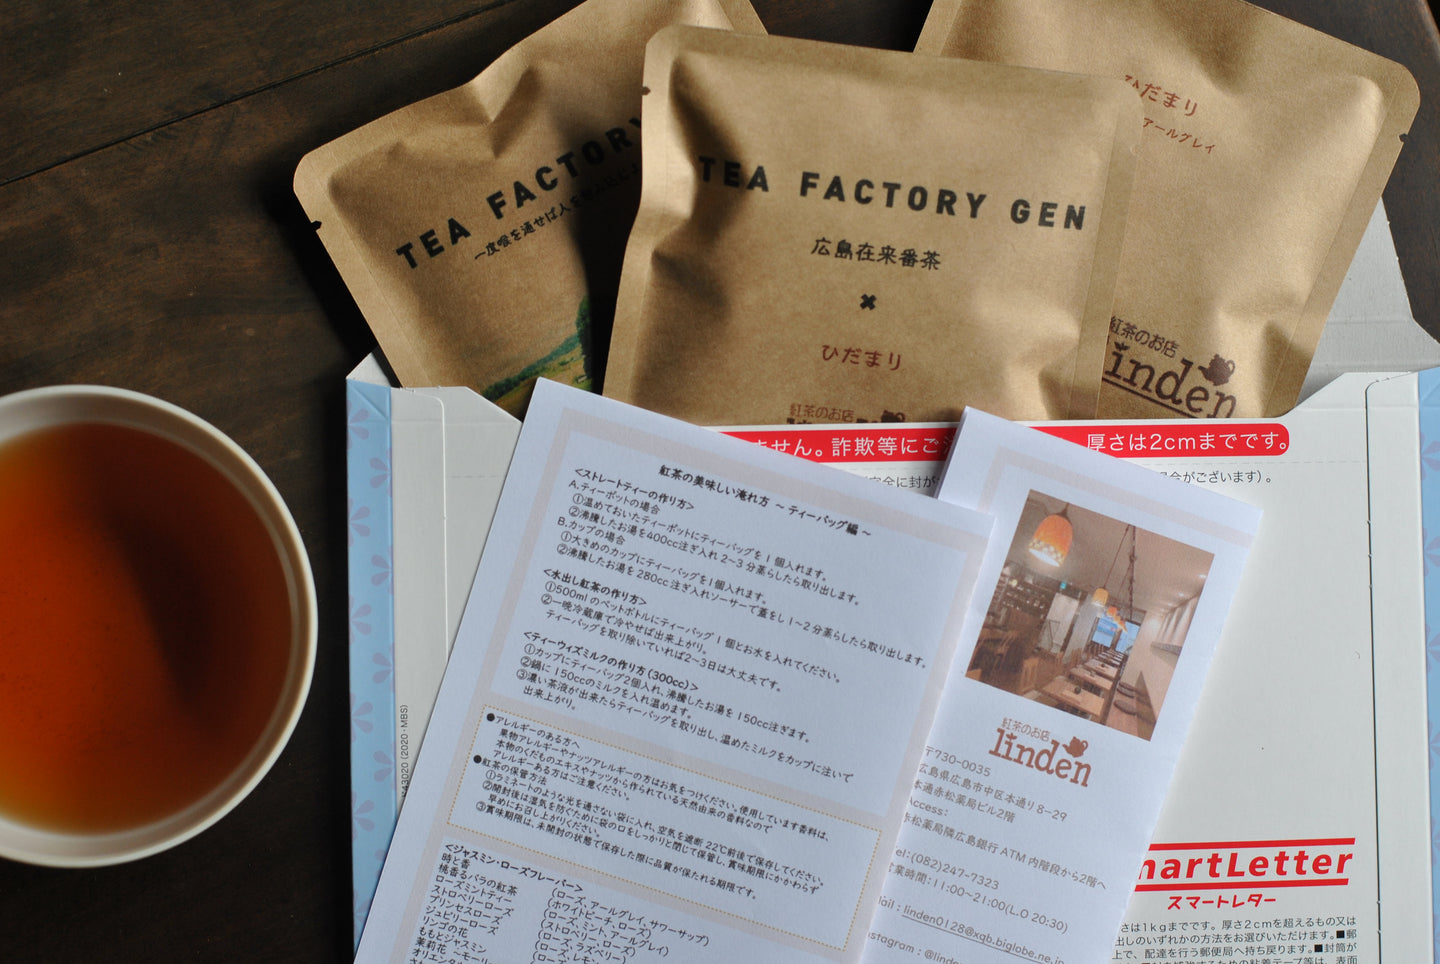 紅茶専門店linden×TEA FACTORY GENの期間限定商品  - TEA FACTORY GEN